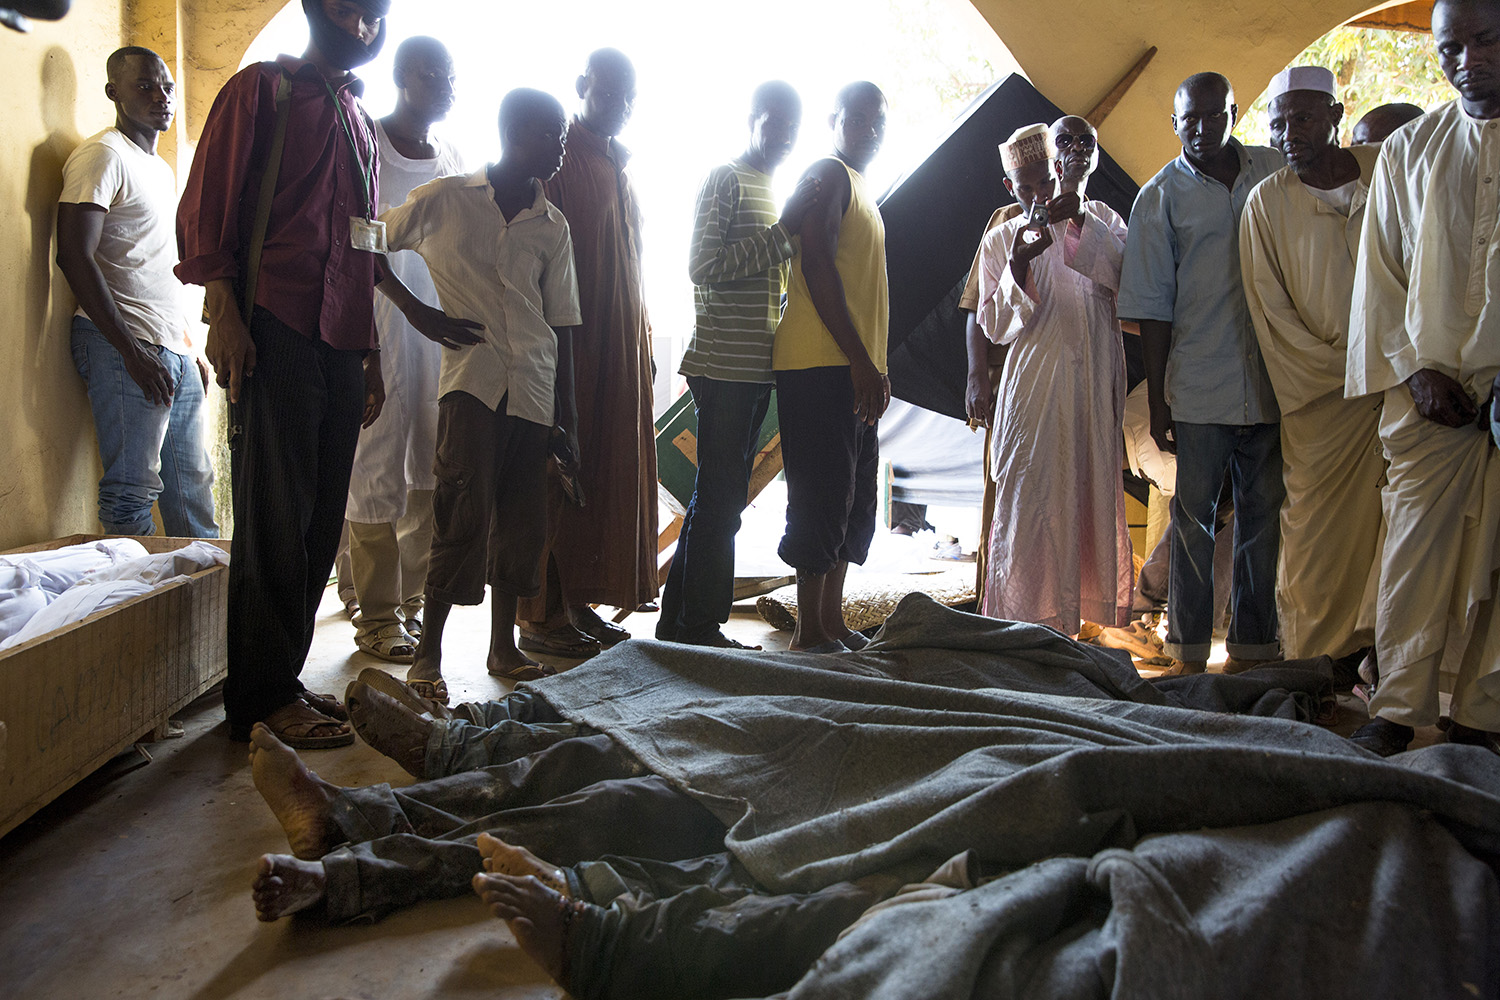 Dec. 5, 2013. 58 bodies, including 4 women, were brought to the Ali Babolo mosque following several early morning attacks by anti-balakas. Most of the dead were killed by machete.